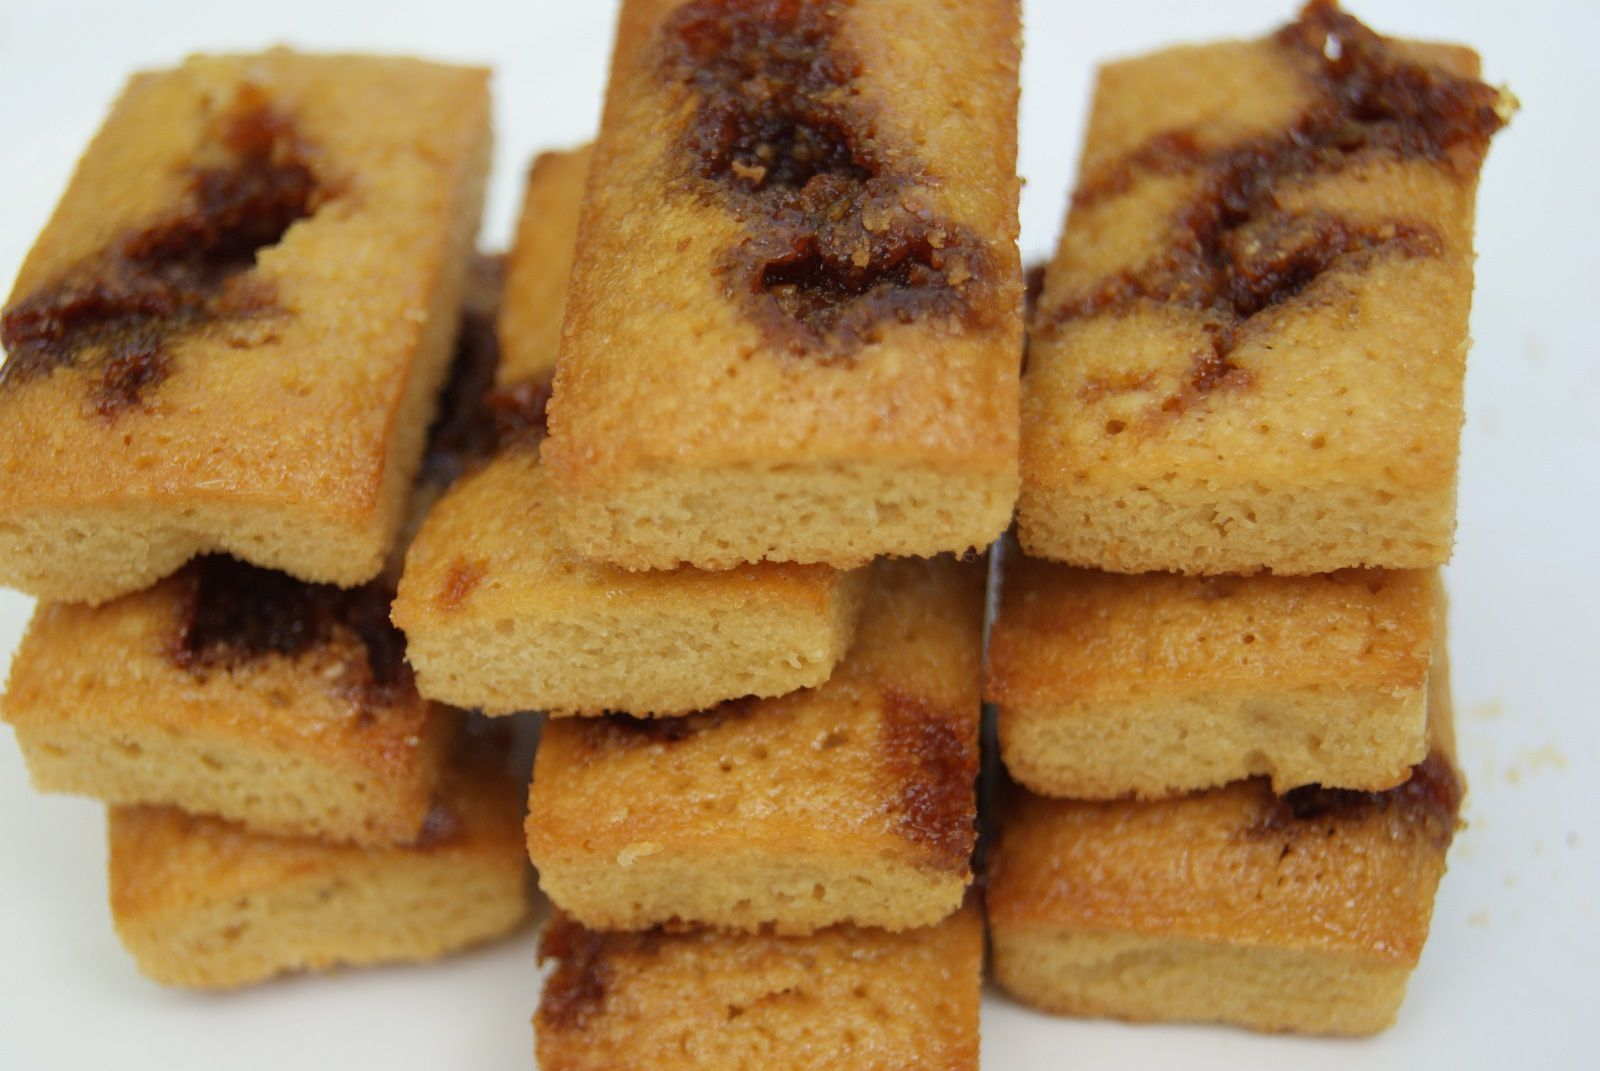 Financiers au caramel